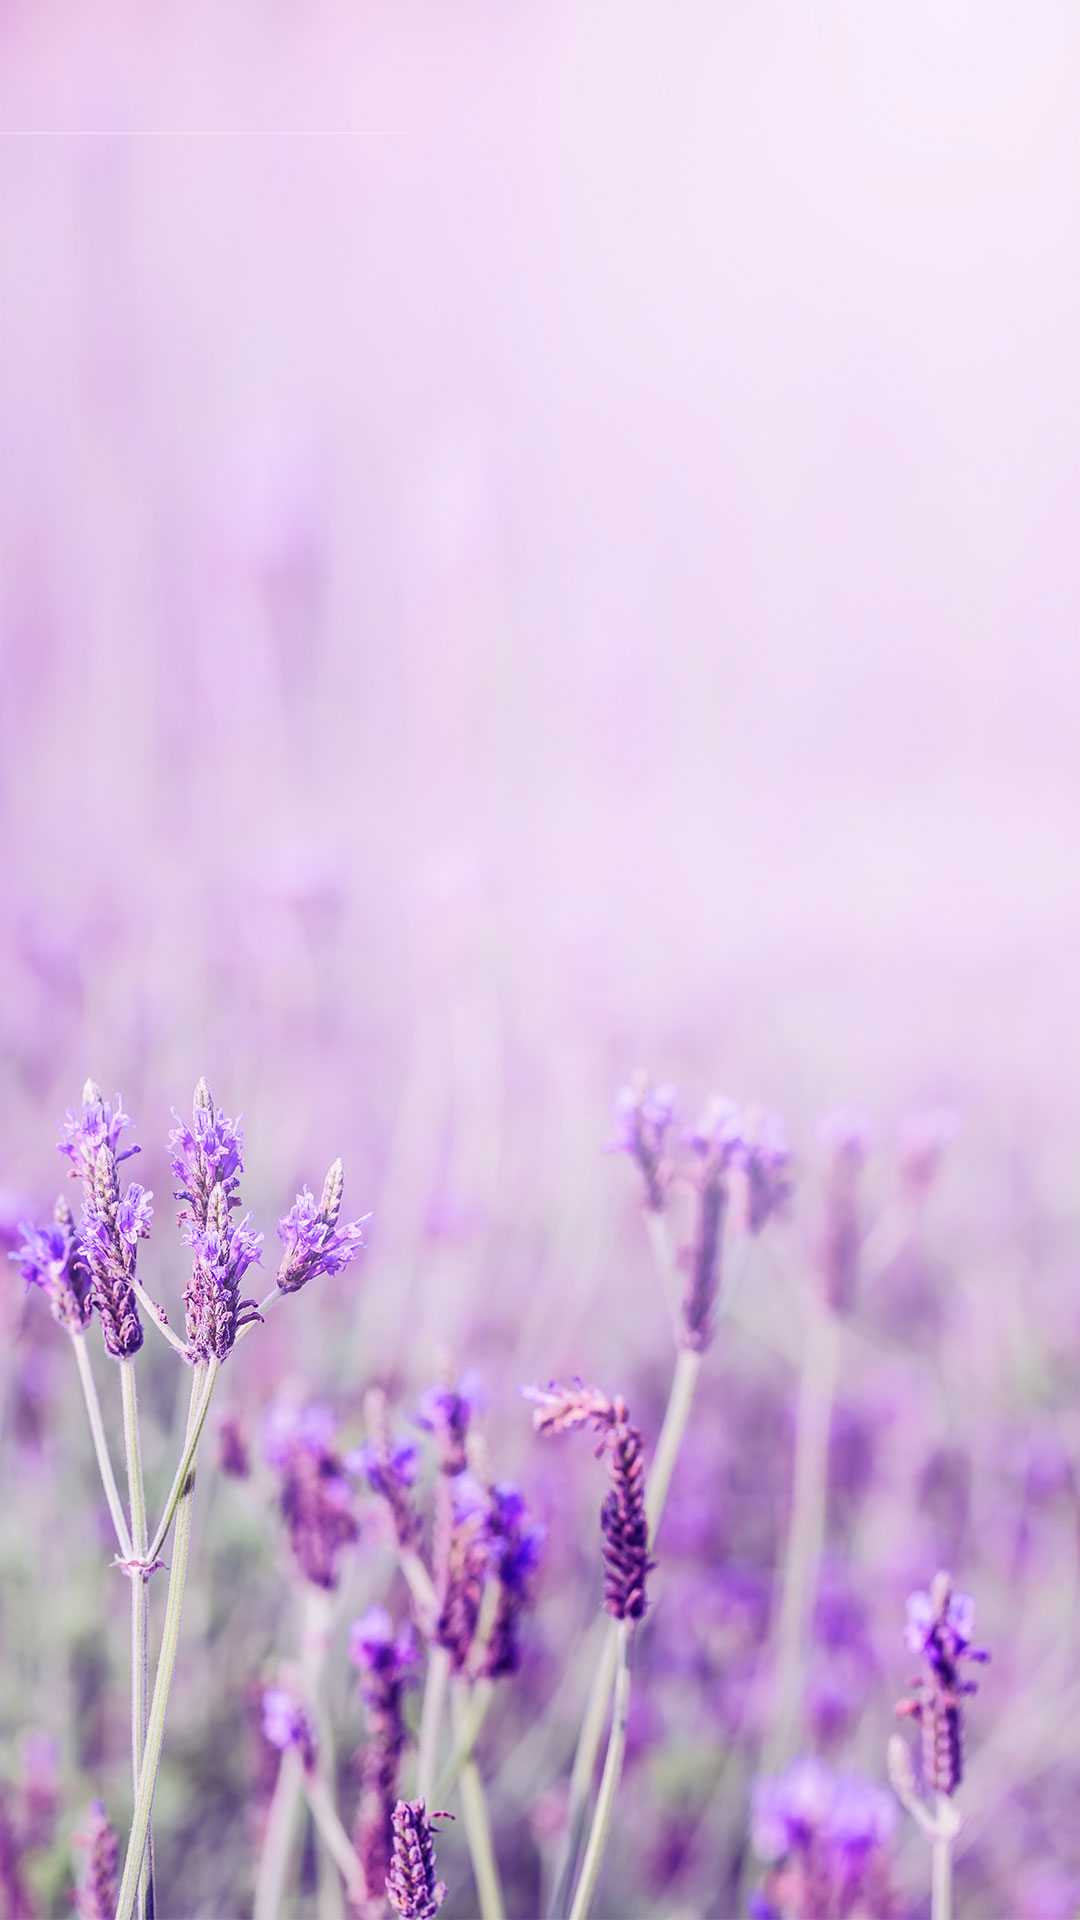 lavender purple aesthetic flower message h5 background